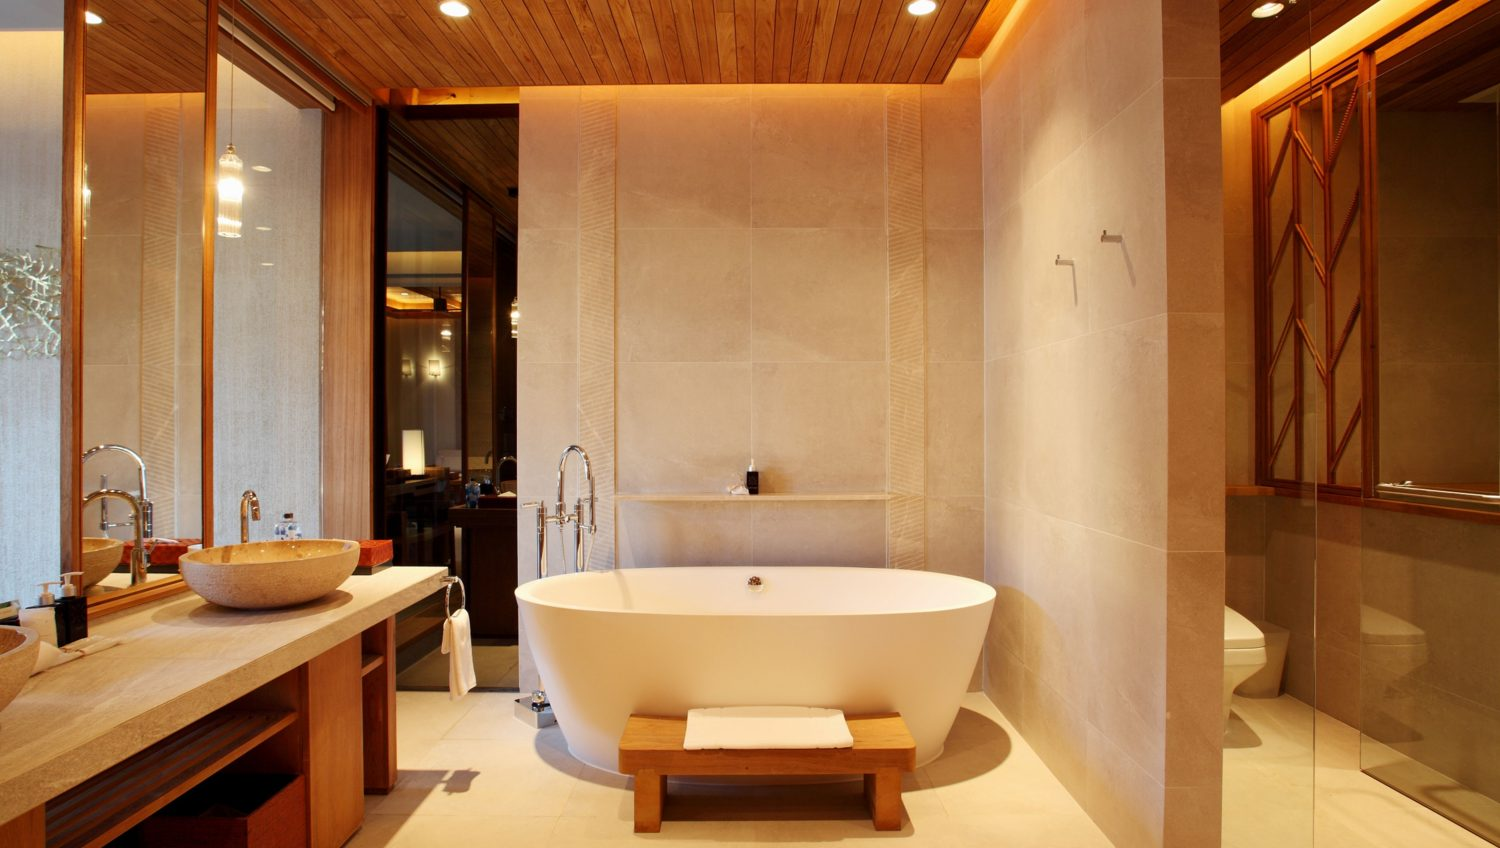 8-Penthouse-Suite-Private-Pool-Sri-Panwa-Luxury-Hotel-Phuket1